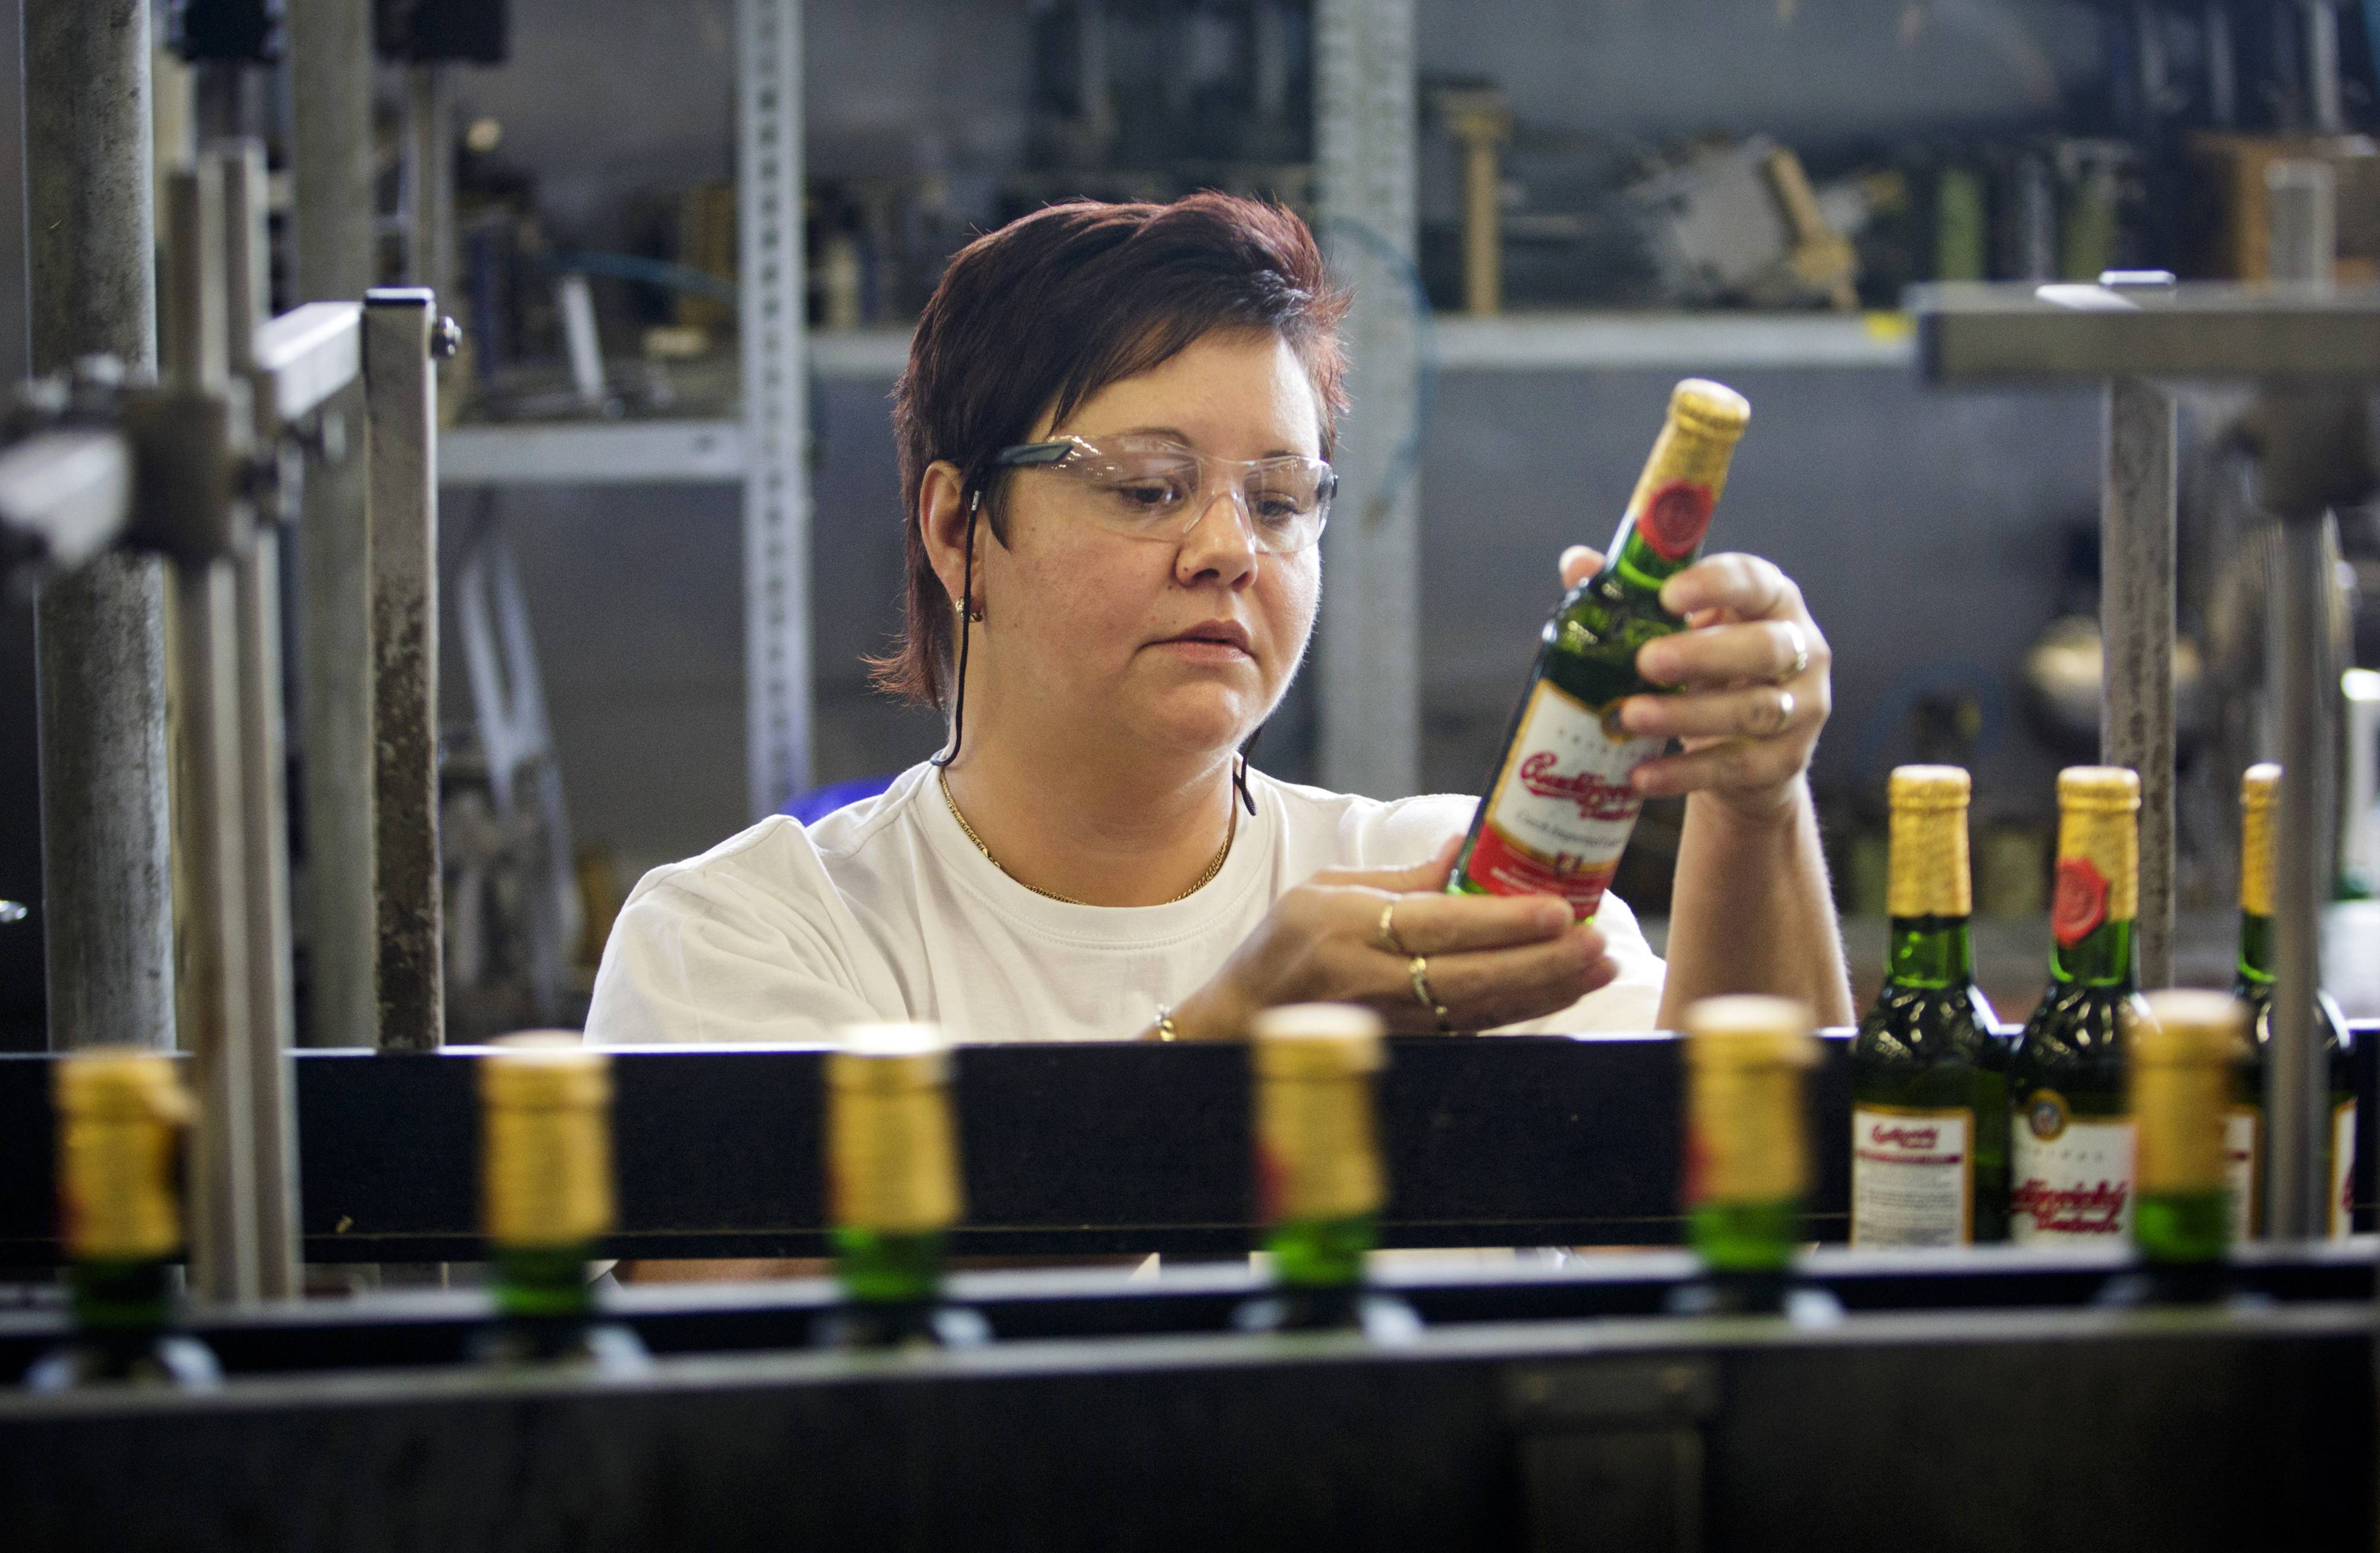 An employee inspects bottles of Budweiser Budvar beer as they pass along the production line in Ceske Budejovicky, Czech Republic. The success of Czech beermakers in finding a foothold in more exotic destinations will depend on how well they address unfamiliar regulations, different drinking habits and low incomes among new consumers, analysts say.